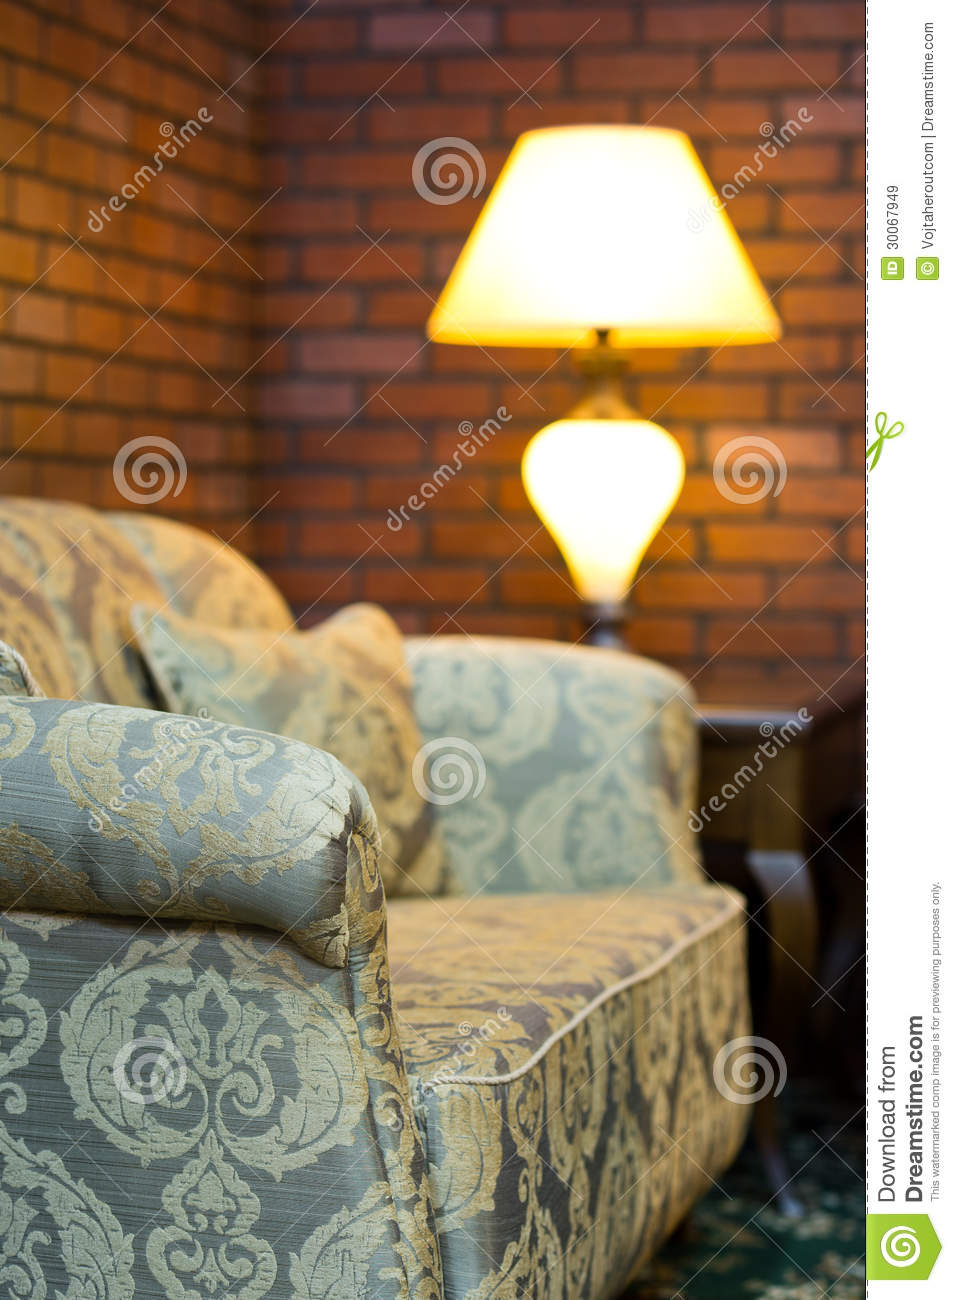 Old Sofa In A Living Room With Red Brick Wall Decor Stock